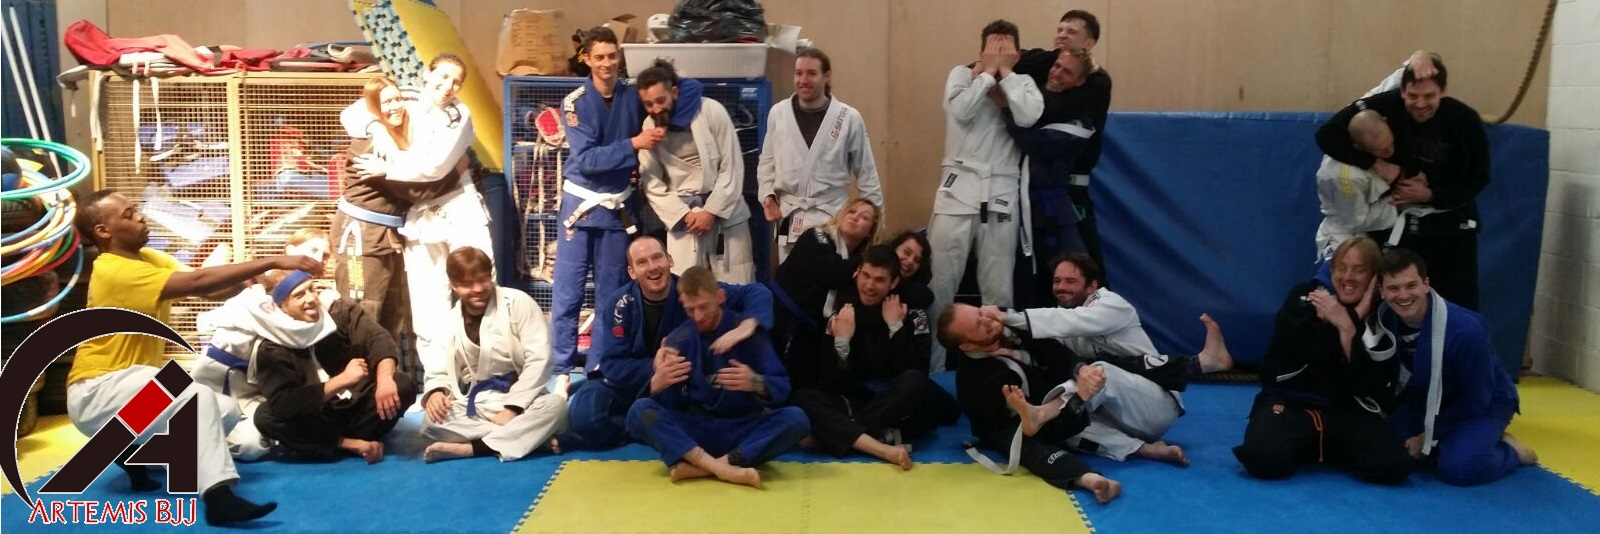 Grading Seminar with Kev Capel at Artemis BJJ Bristol Brazilian Jiu Jitsu group